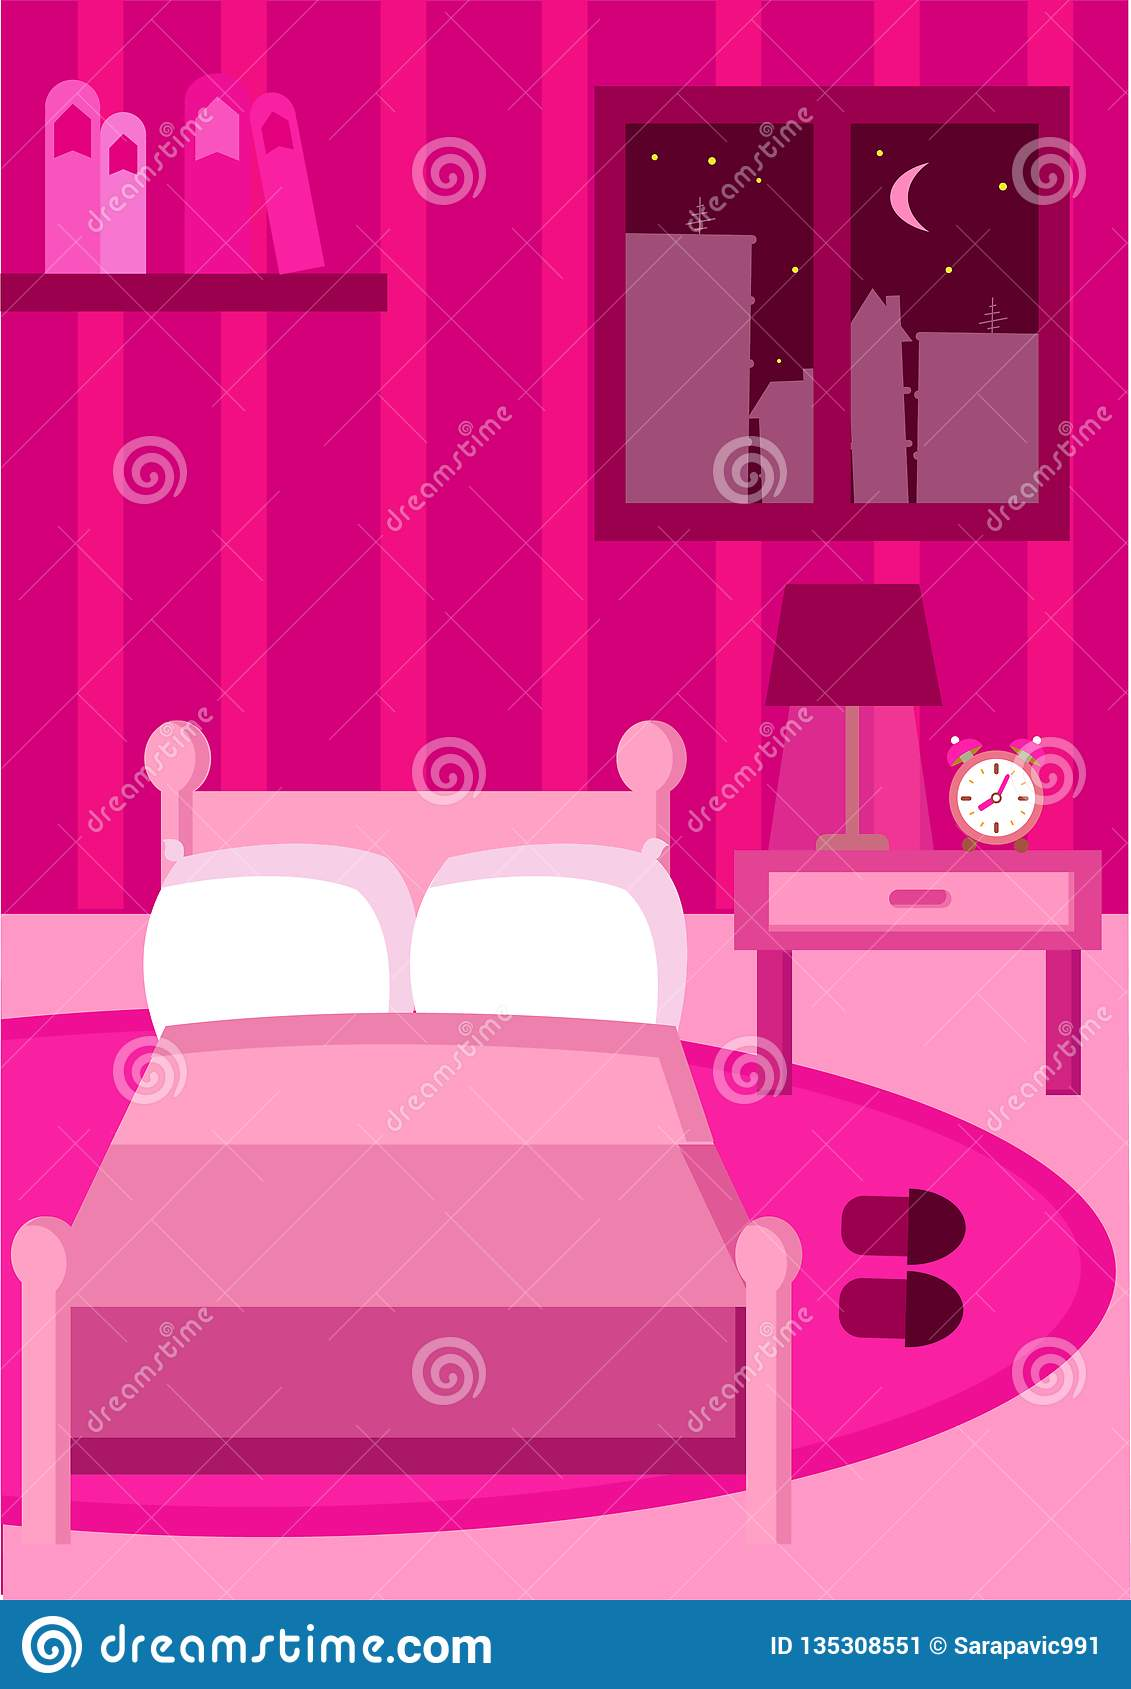 Bedroom All In Pink Color With All Pink Furniture Stock Illustration